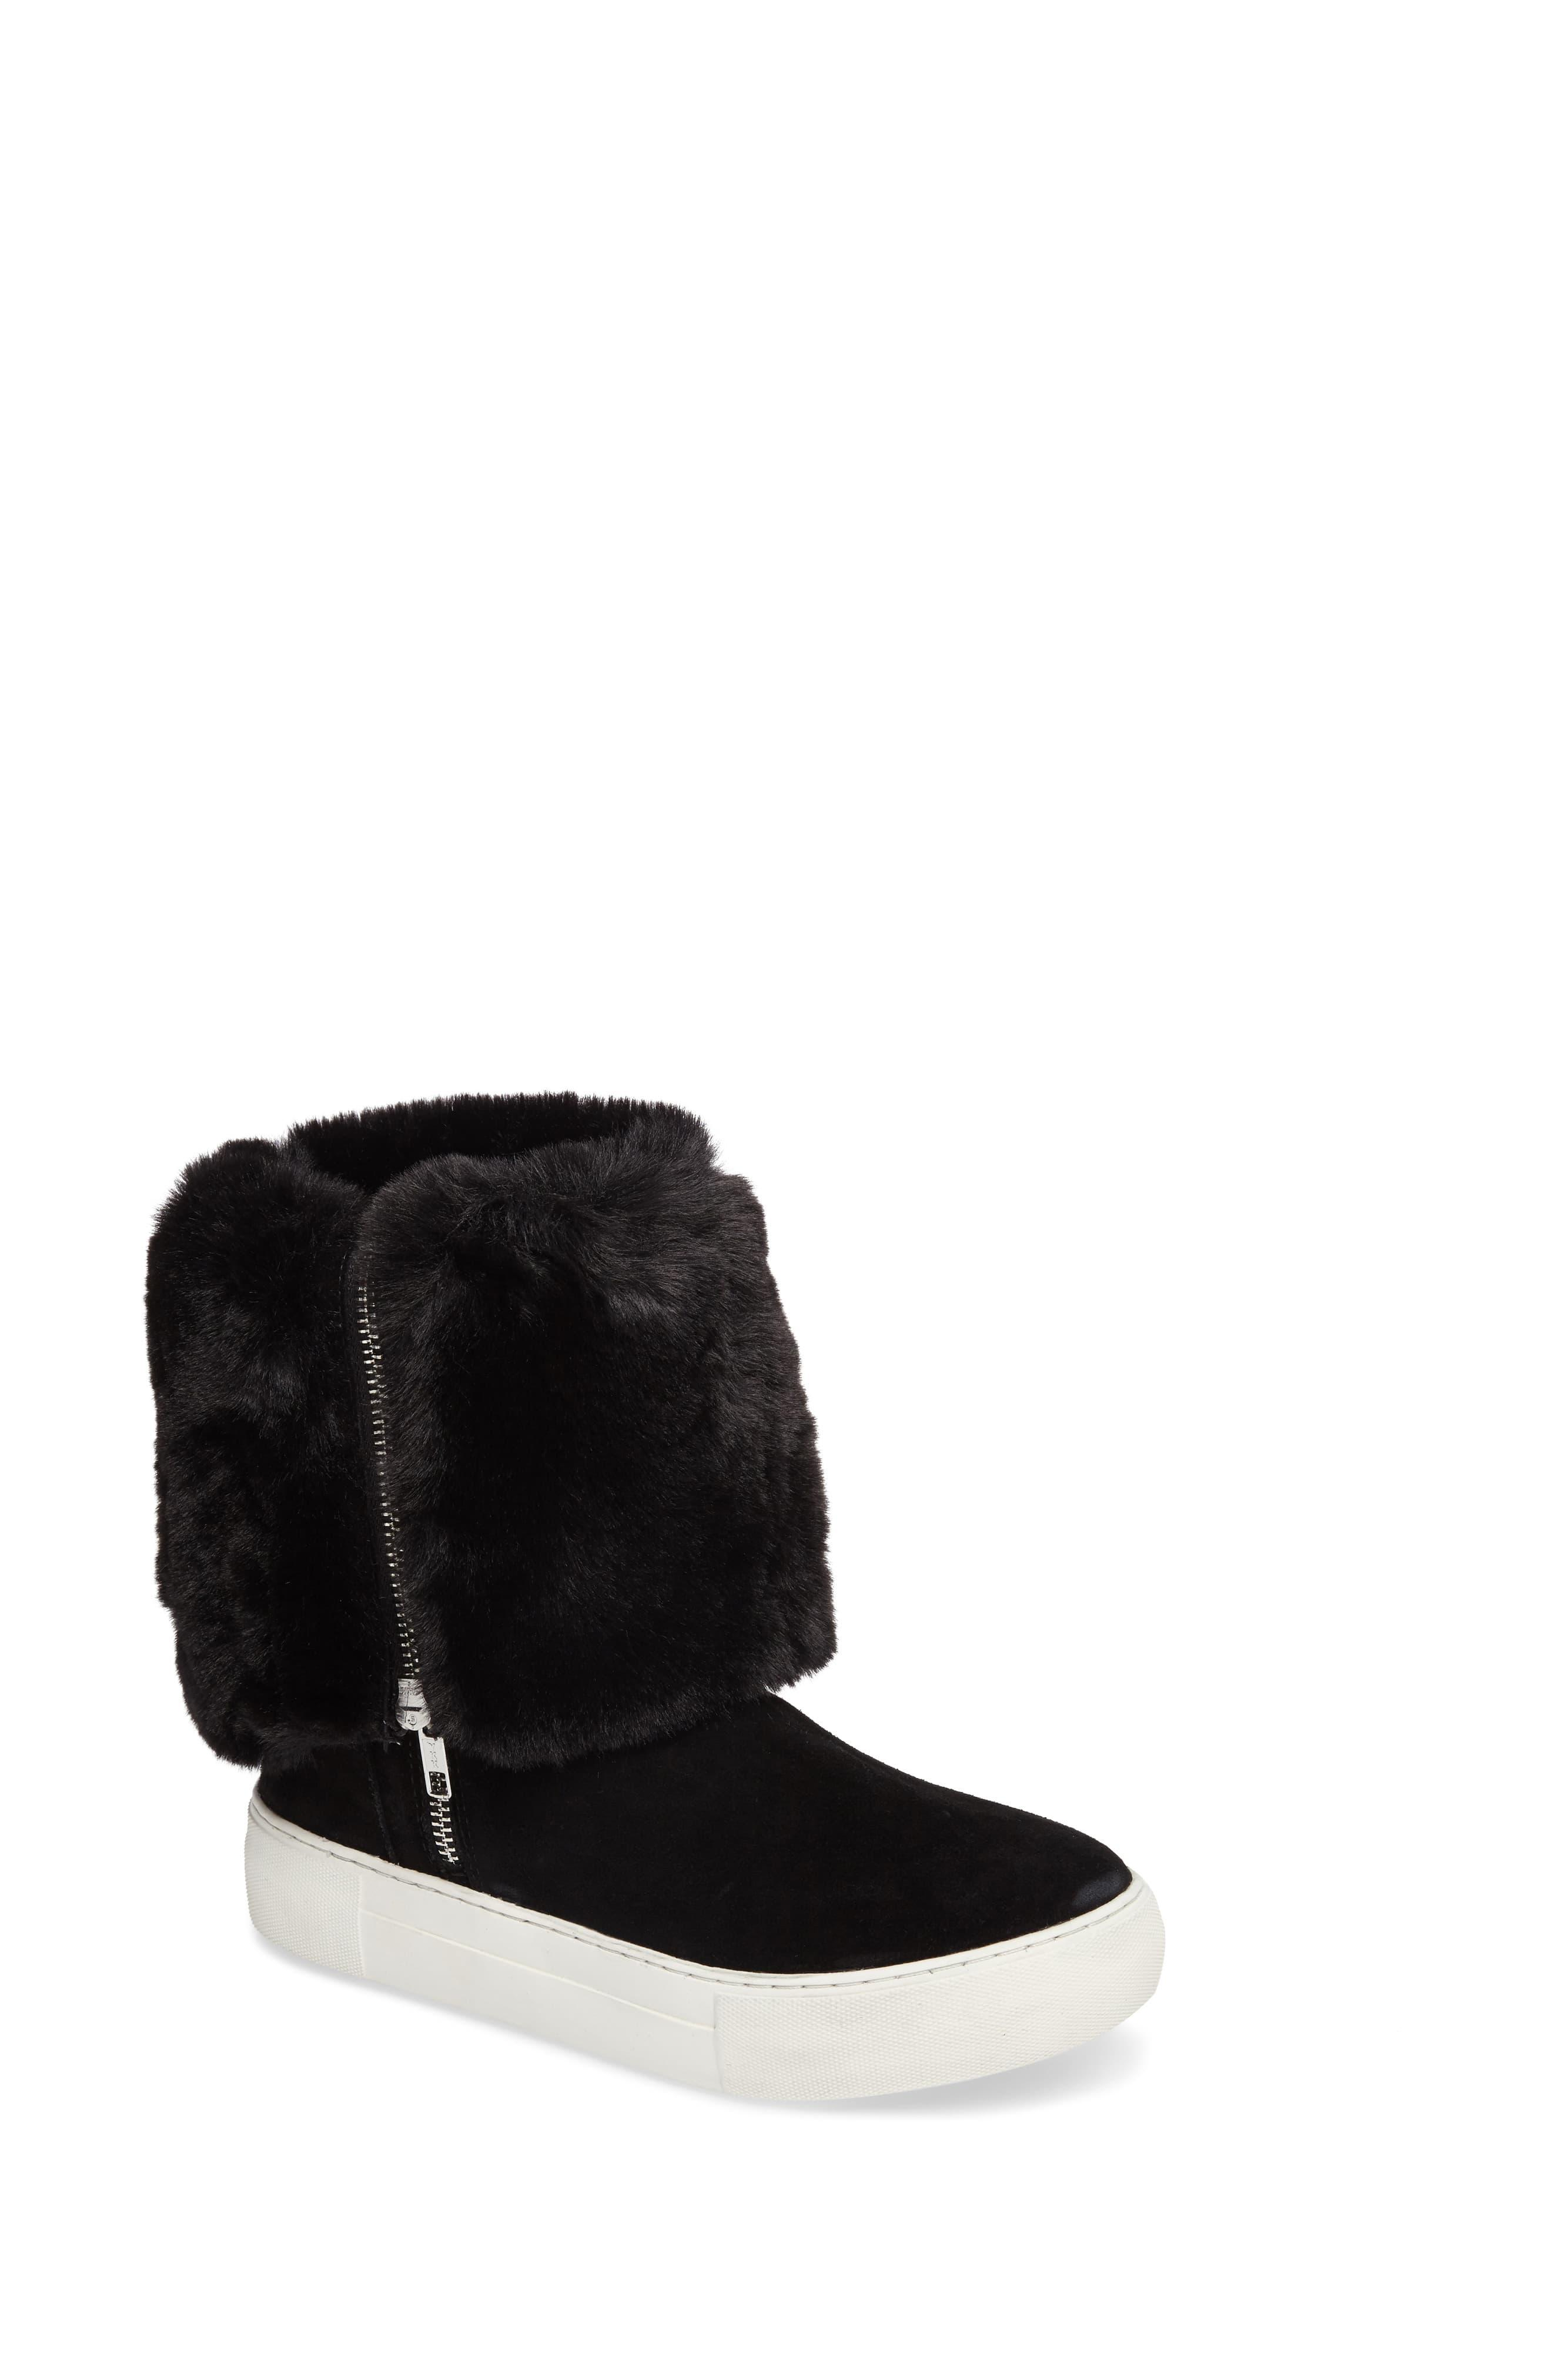 J/Slides Apple Faux Shearling Boot in